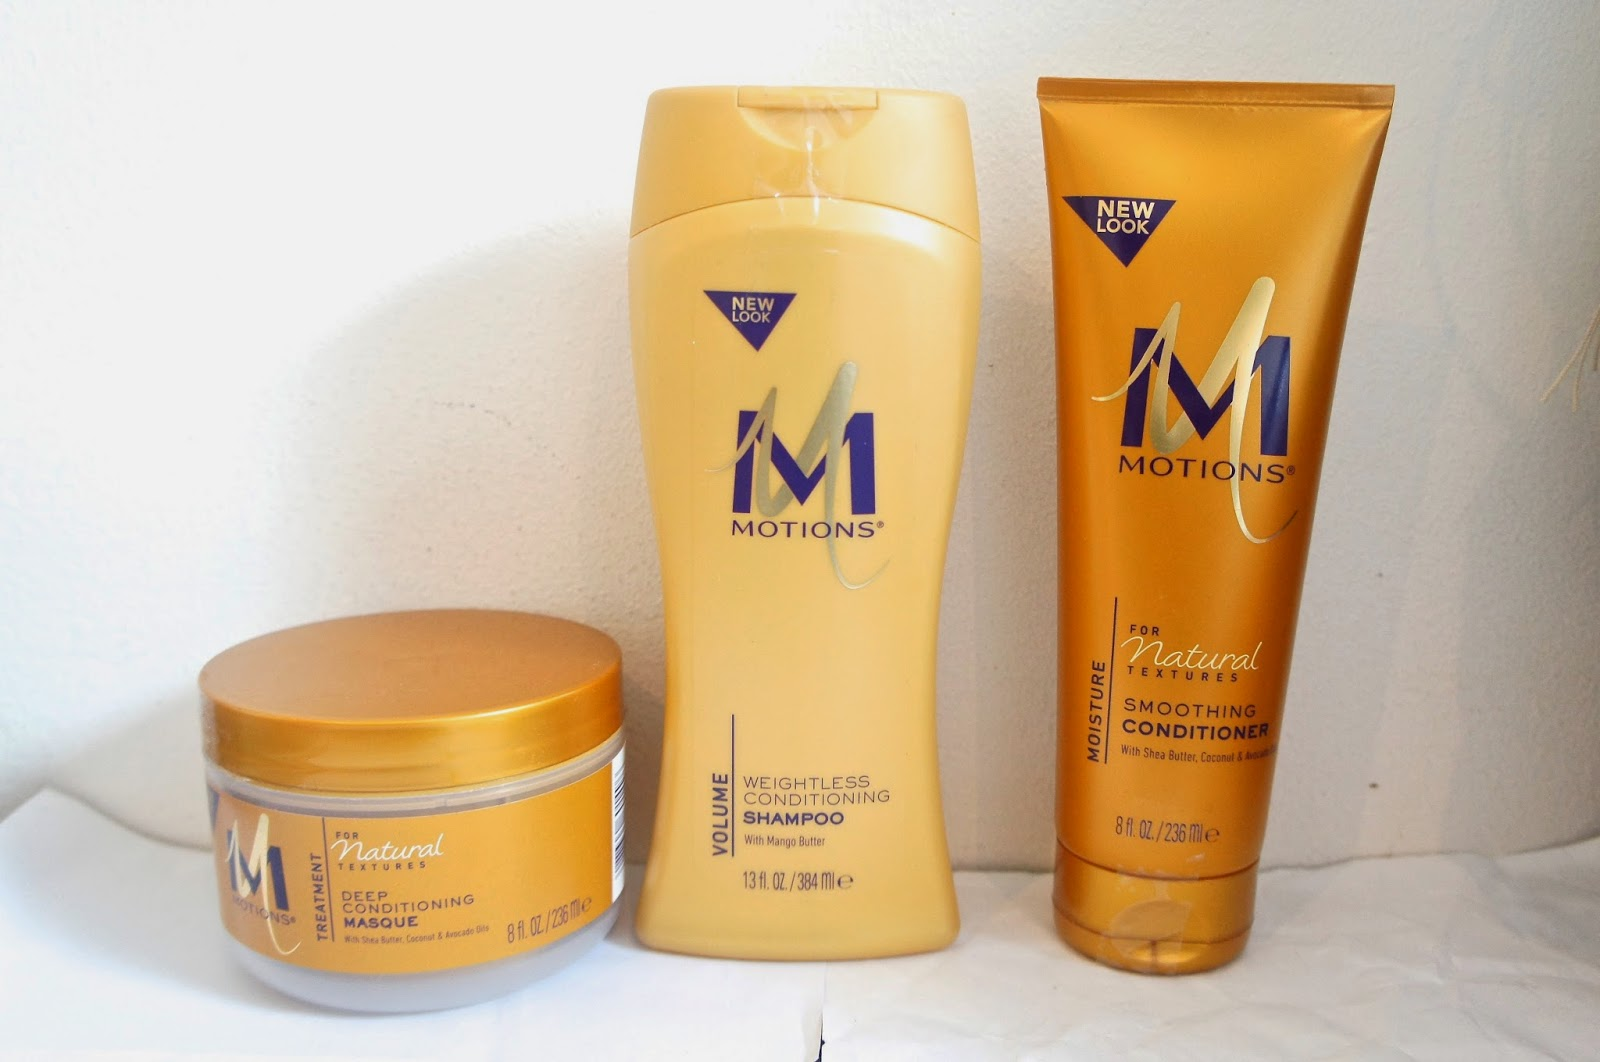 Motions For Natural Textures; Deep Conditioning Masque & Smoothing Conditioner and Motions Weightless Conditioning Shampoo Review & Demo Video